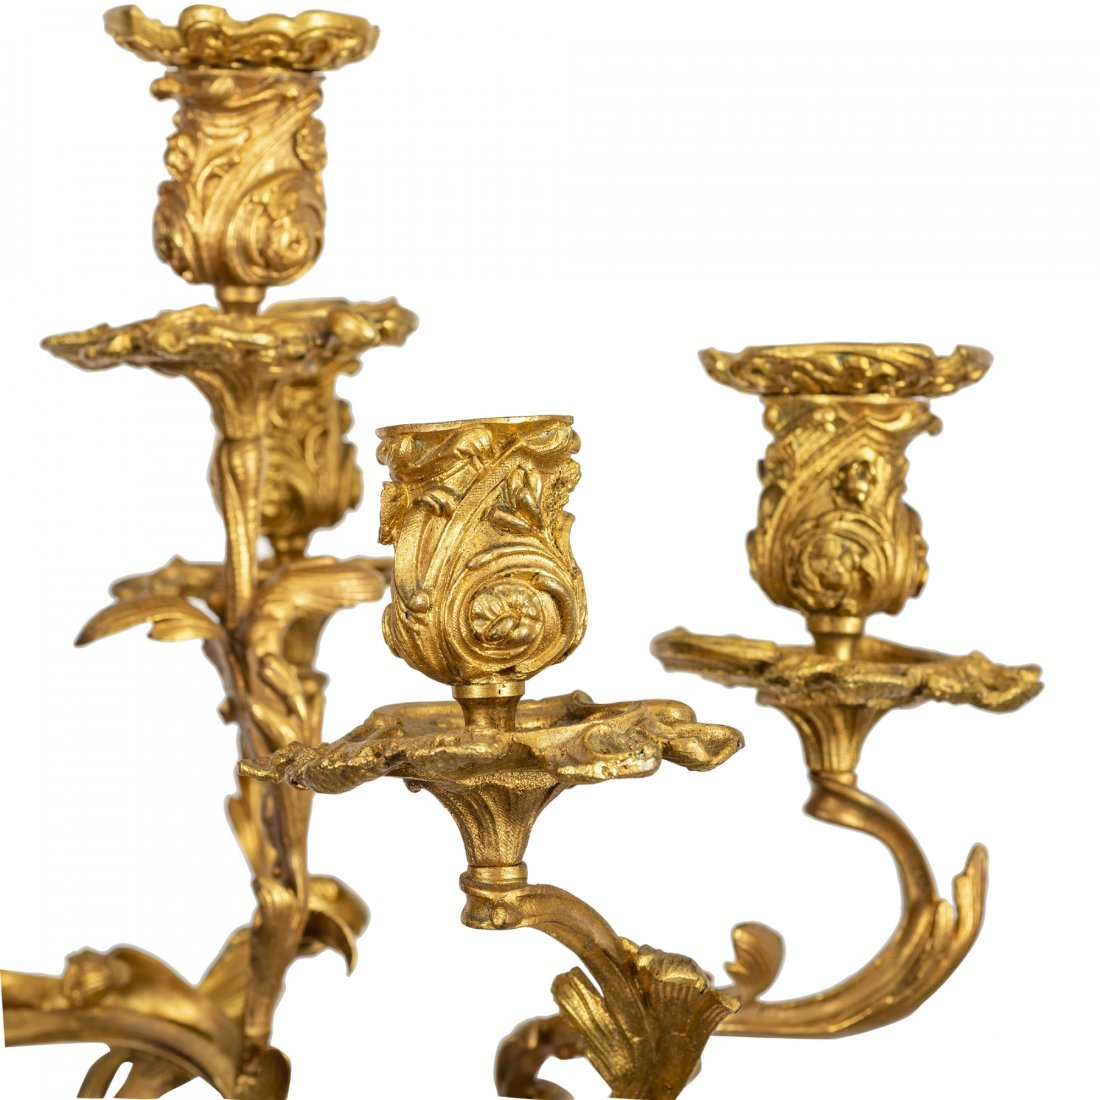 Large and Fine Pair of 19th Century Candelabra - 4